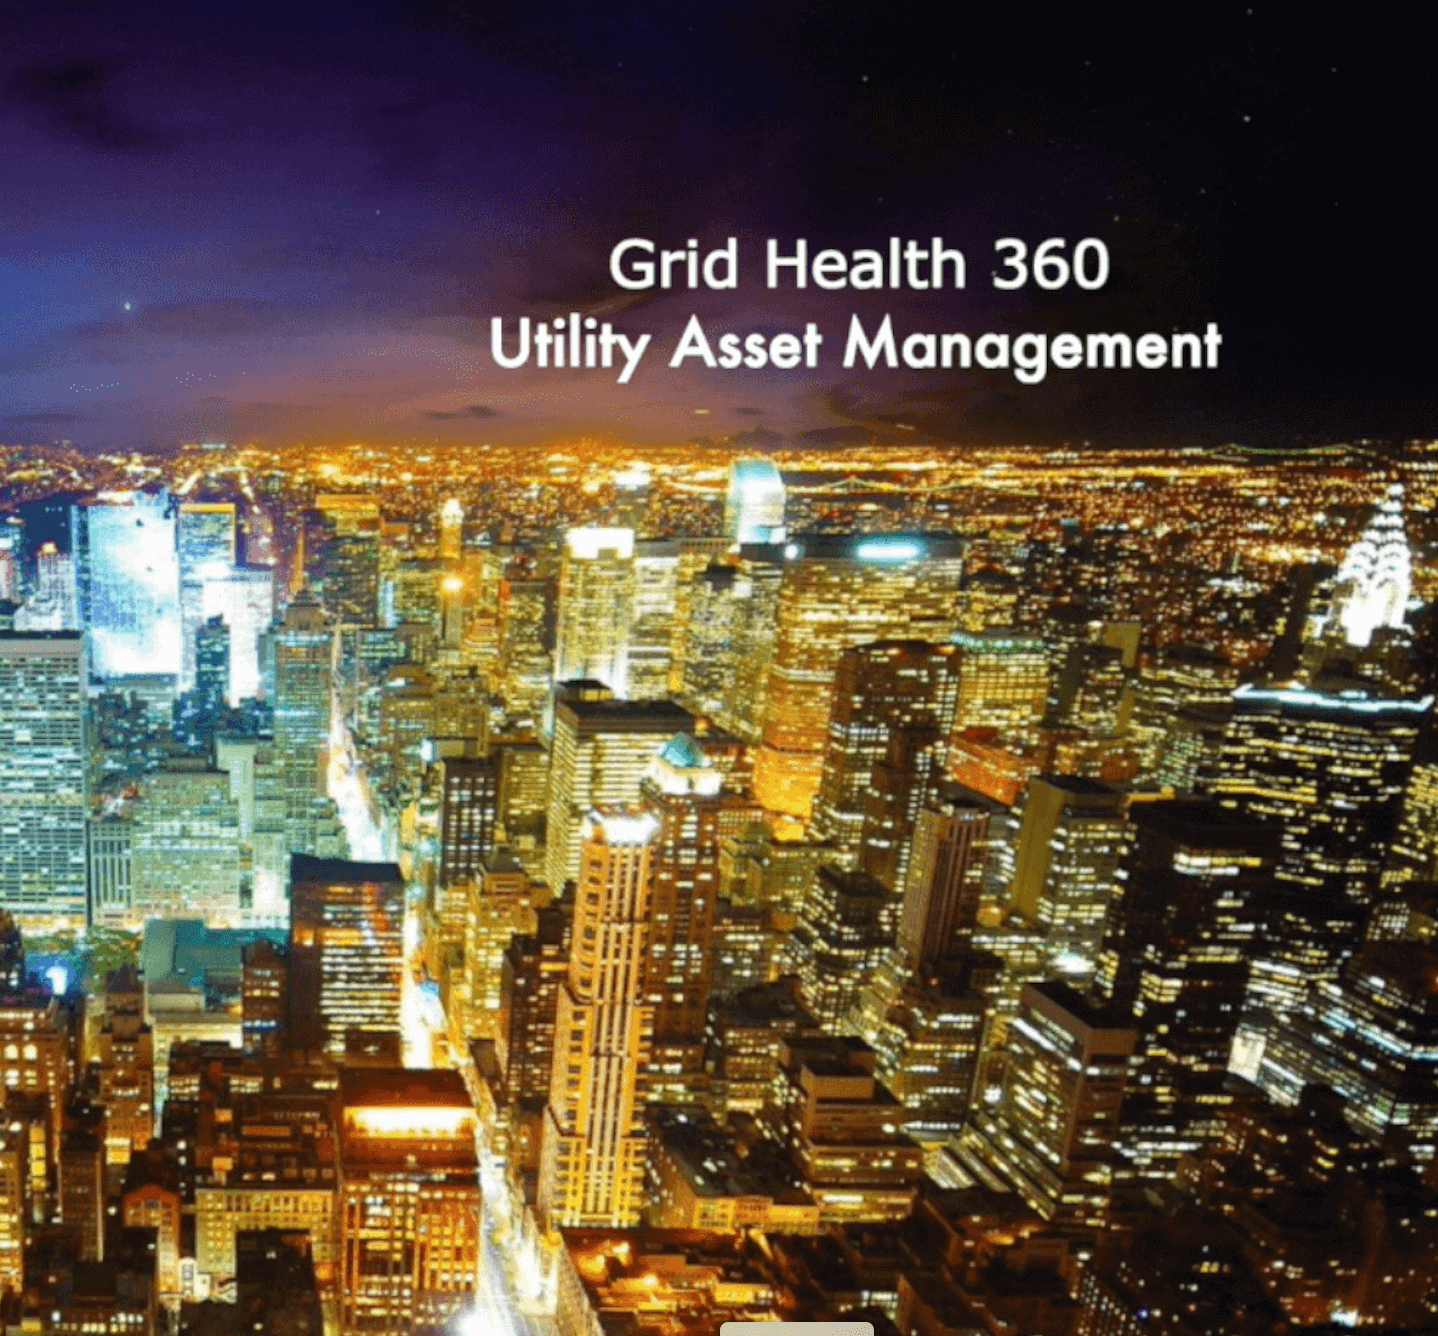 Grid Health 360 Utility Asset Management